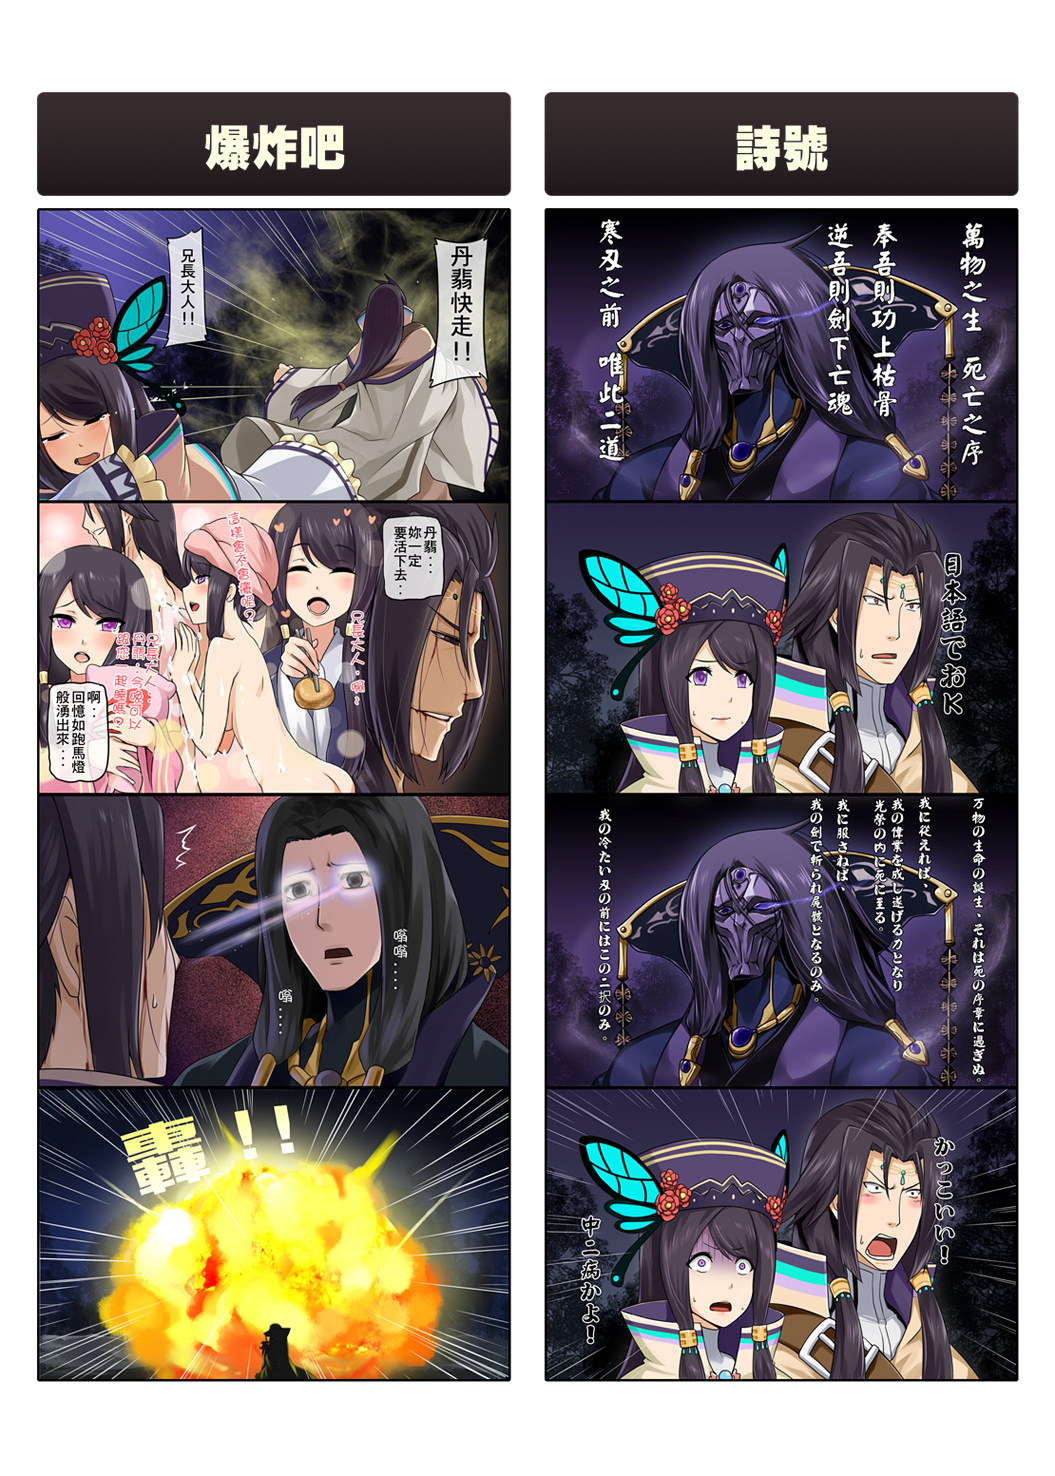 bangs black_border black_hair border breasts closed_eyes closed_mouth commentary_request dan_fei darkmaya hair_ornament hair_tubes hat highres long_hair looking_at_another looking_at_viewer looking_away multiple_girls nude open_mouth speech_bubble swept_bangs thunderbolt_fantasy translation_request violet_eyes wide-eyed